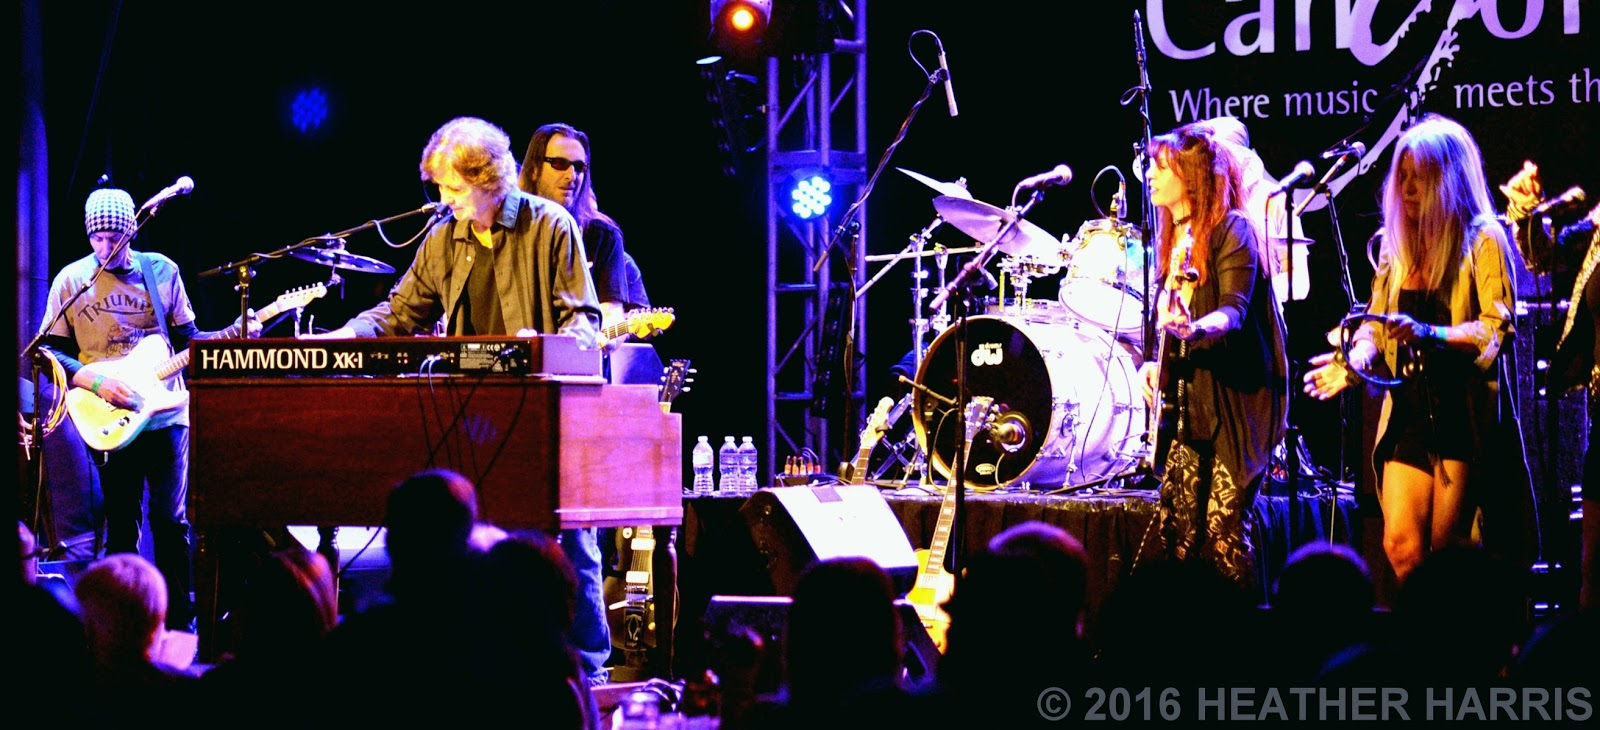 Fast Film Felix Cavaliere And The Hailers Live 9 9 16 At